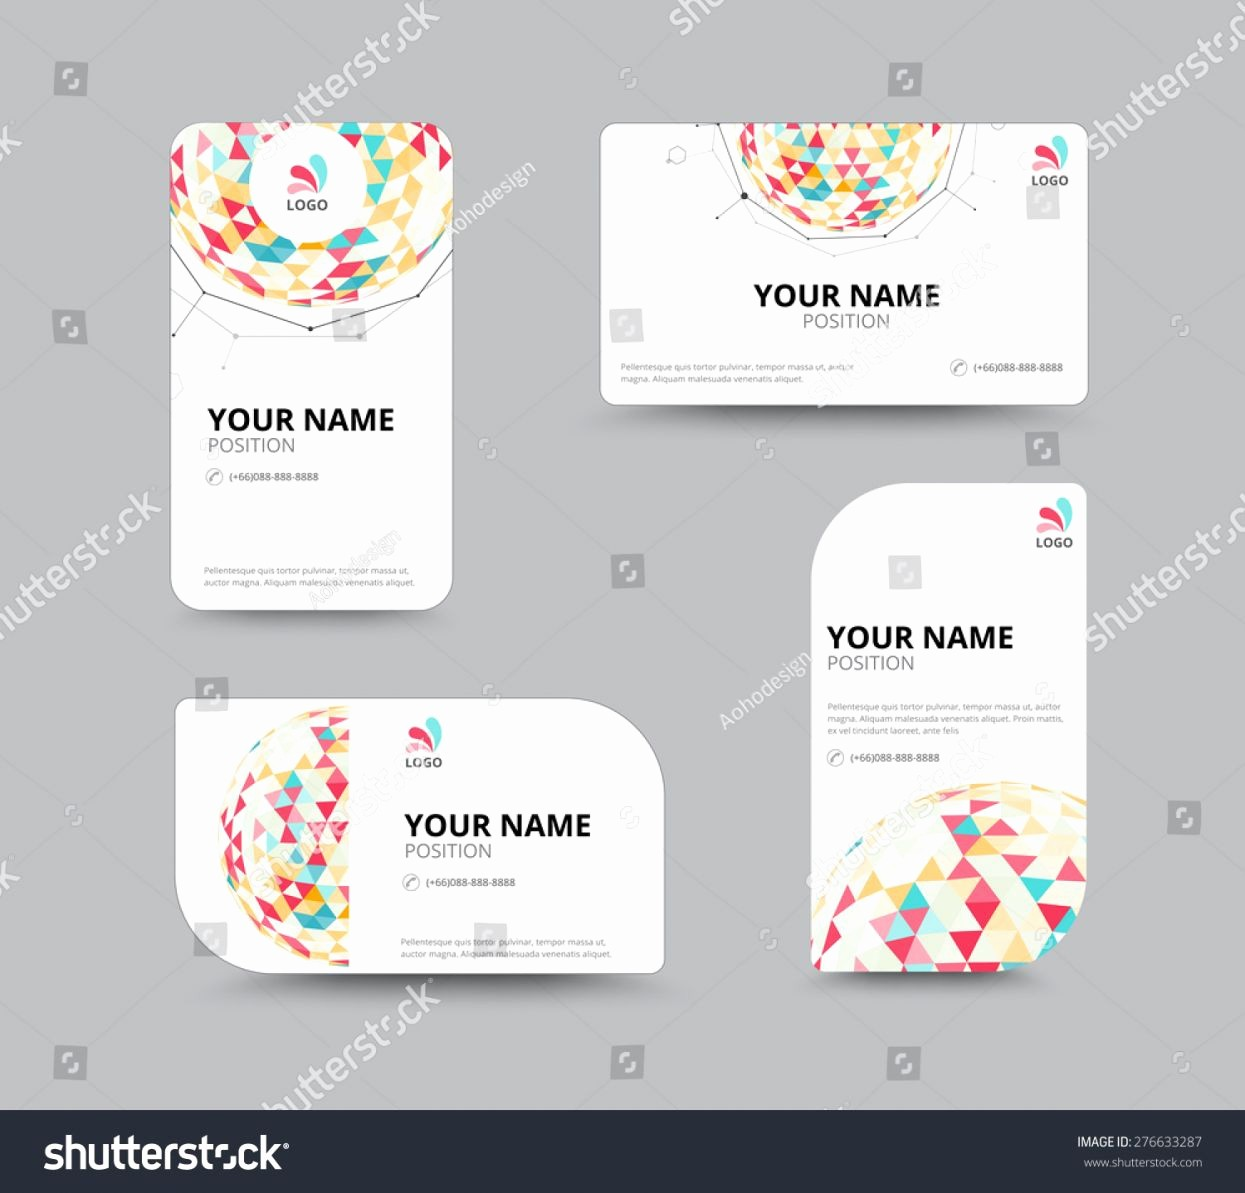 Microsoft Publisher Business Card Templates Fresh Microsoft Publisher Business Card Templates Image